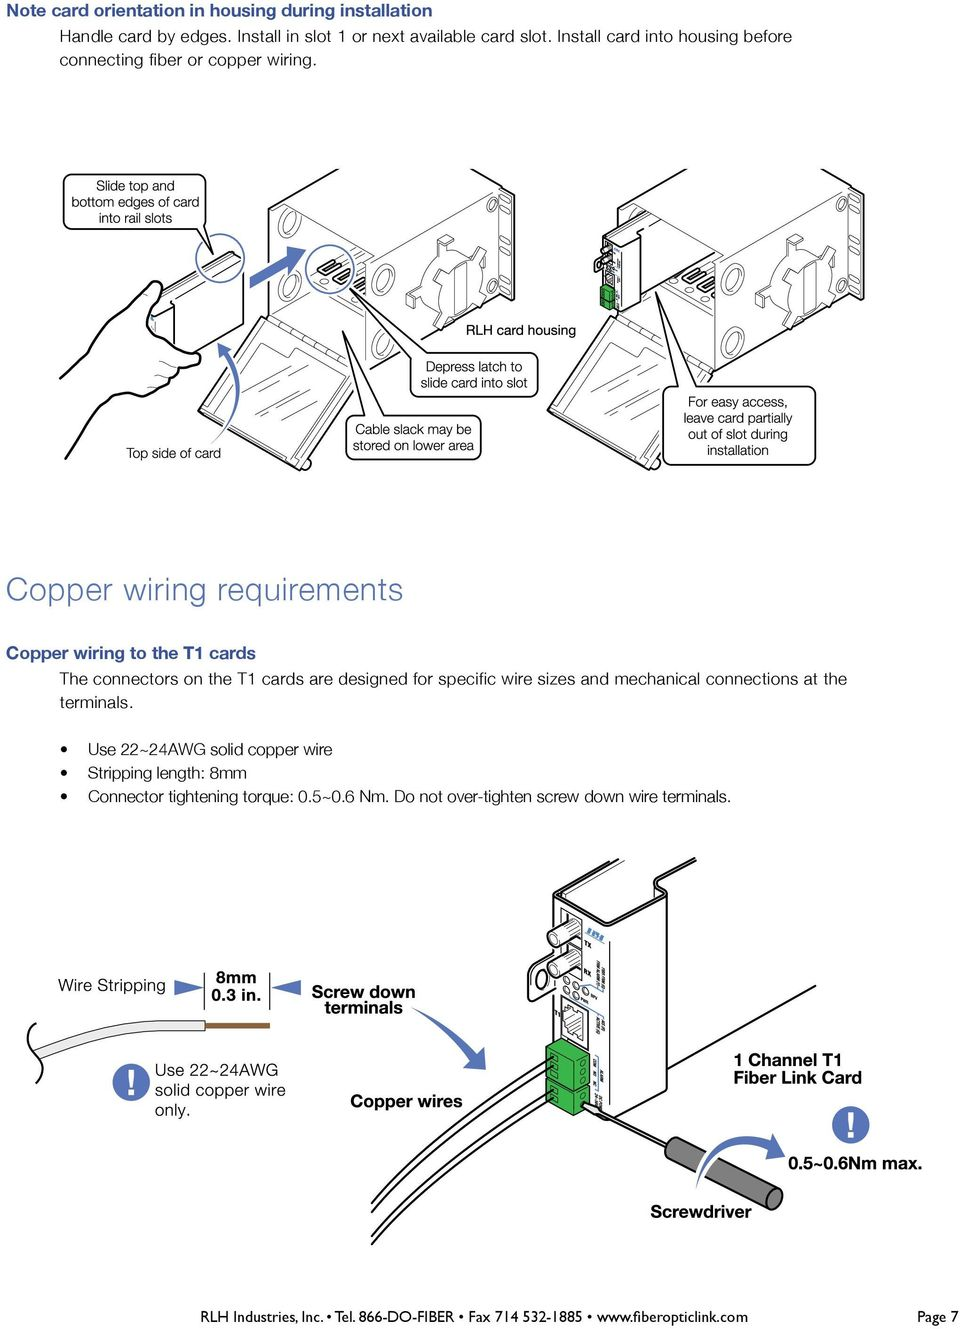 Copper T1 Wiring Diagram For Dummies Libraries Digital Meter Emprendedor Link On Amp Rlh Single Channel Fiber Card System Pdfcopper Requirements To The